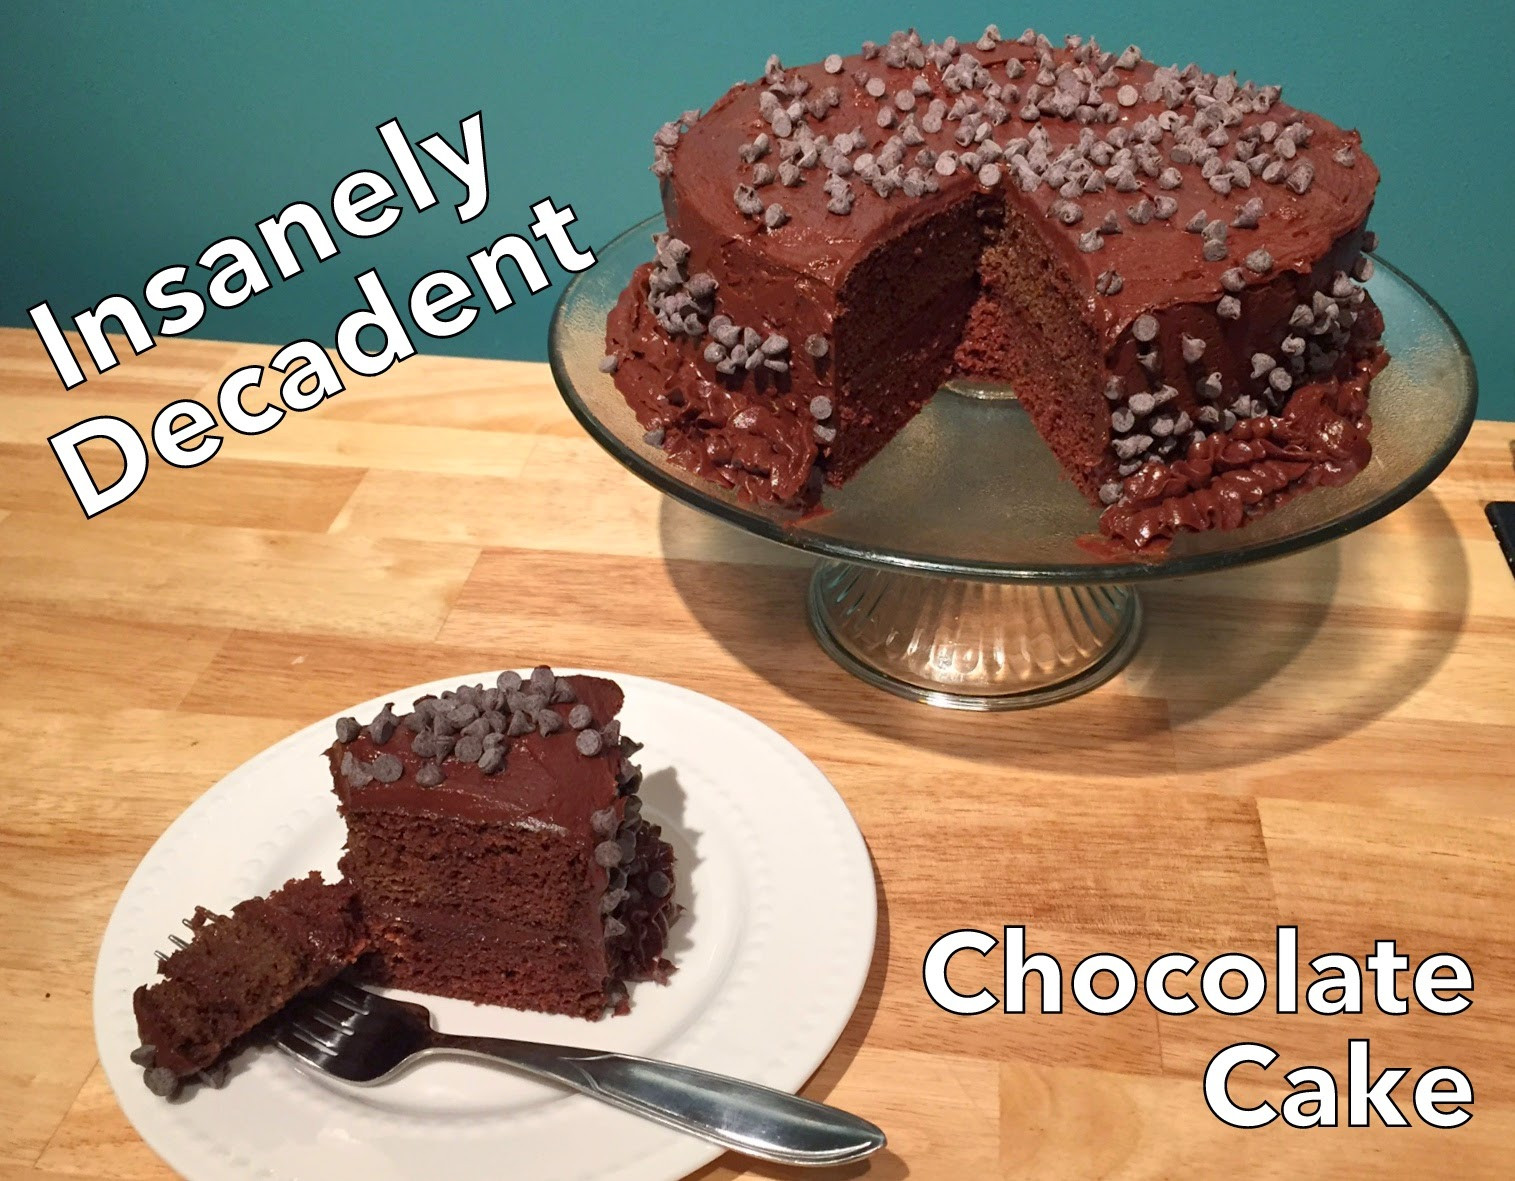 Healthy Chocolate Cake  Cut the Wheat Insanely Decadent Healthy Chocolate Cake